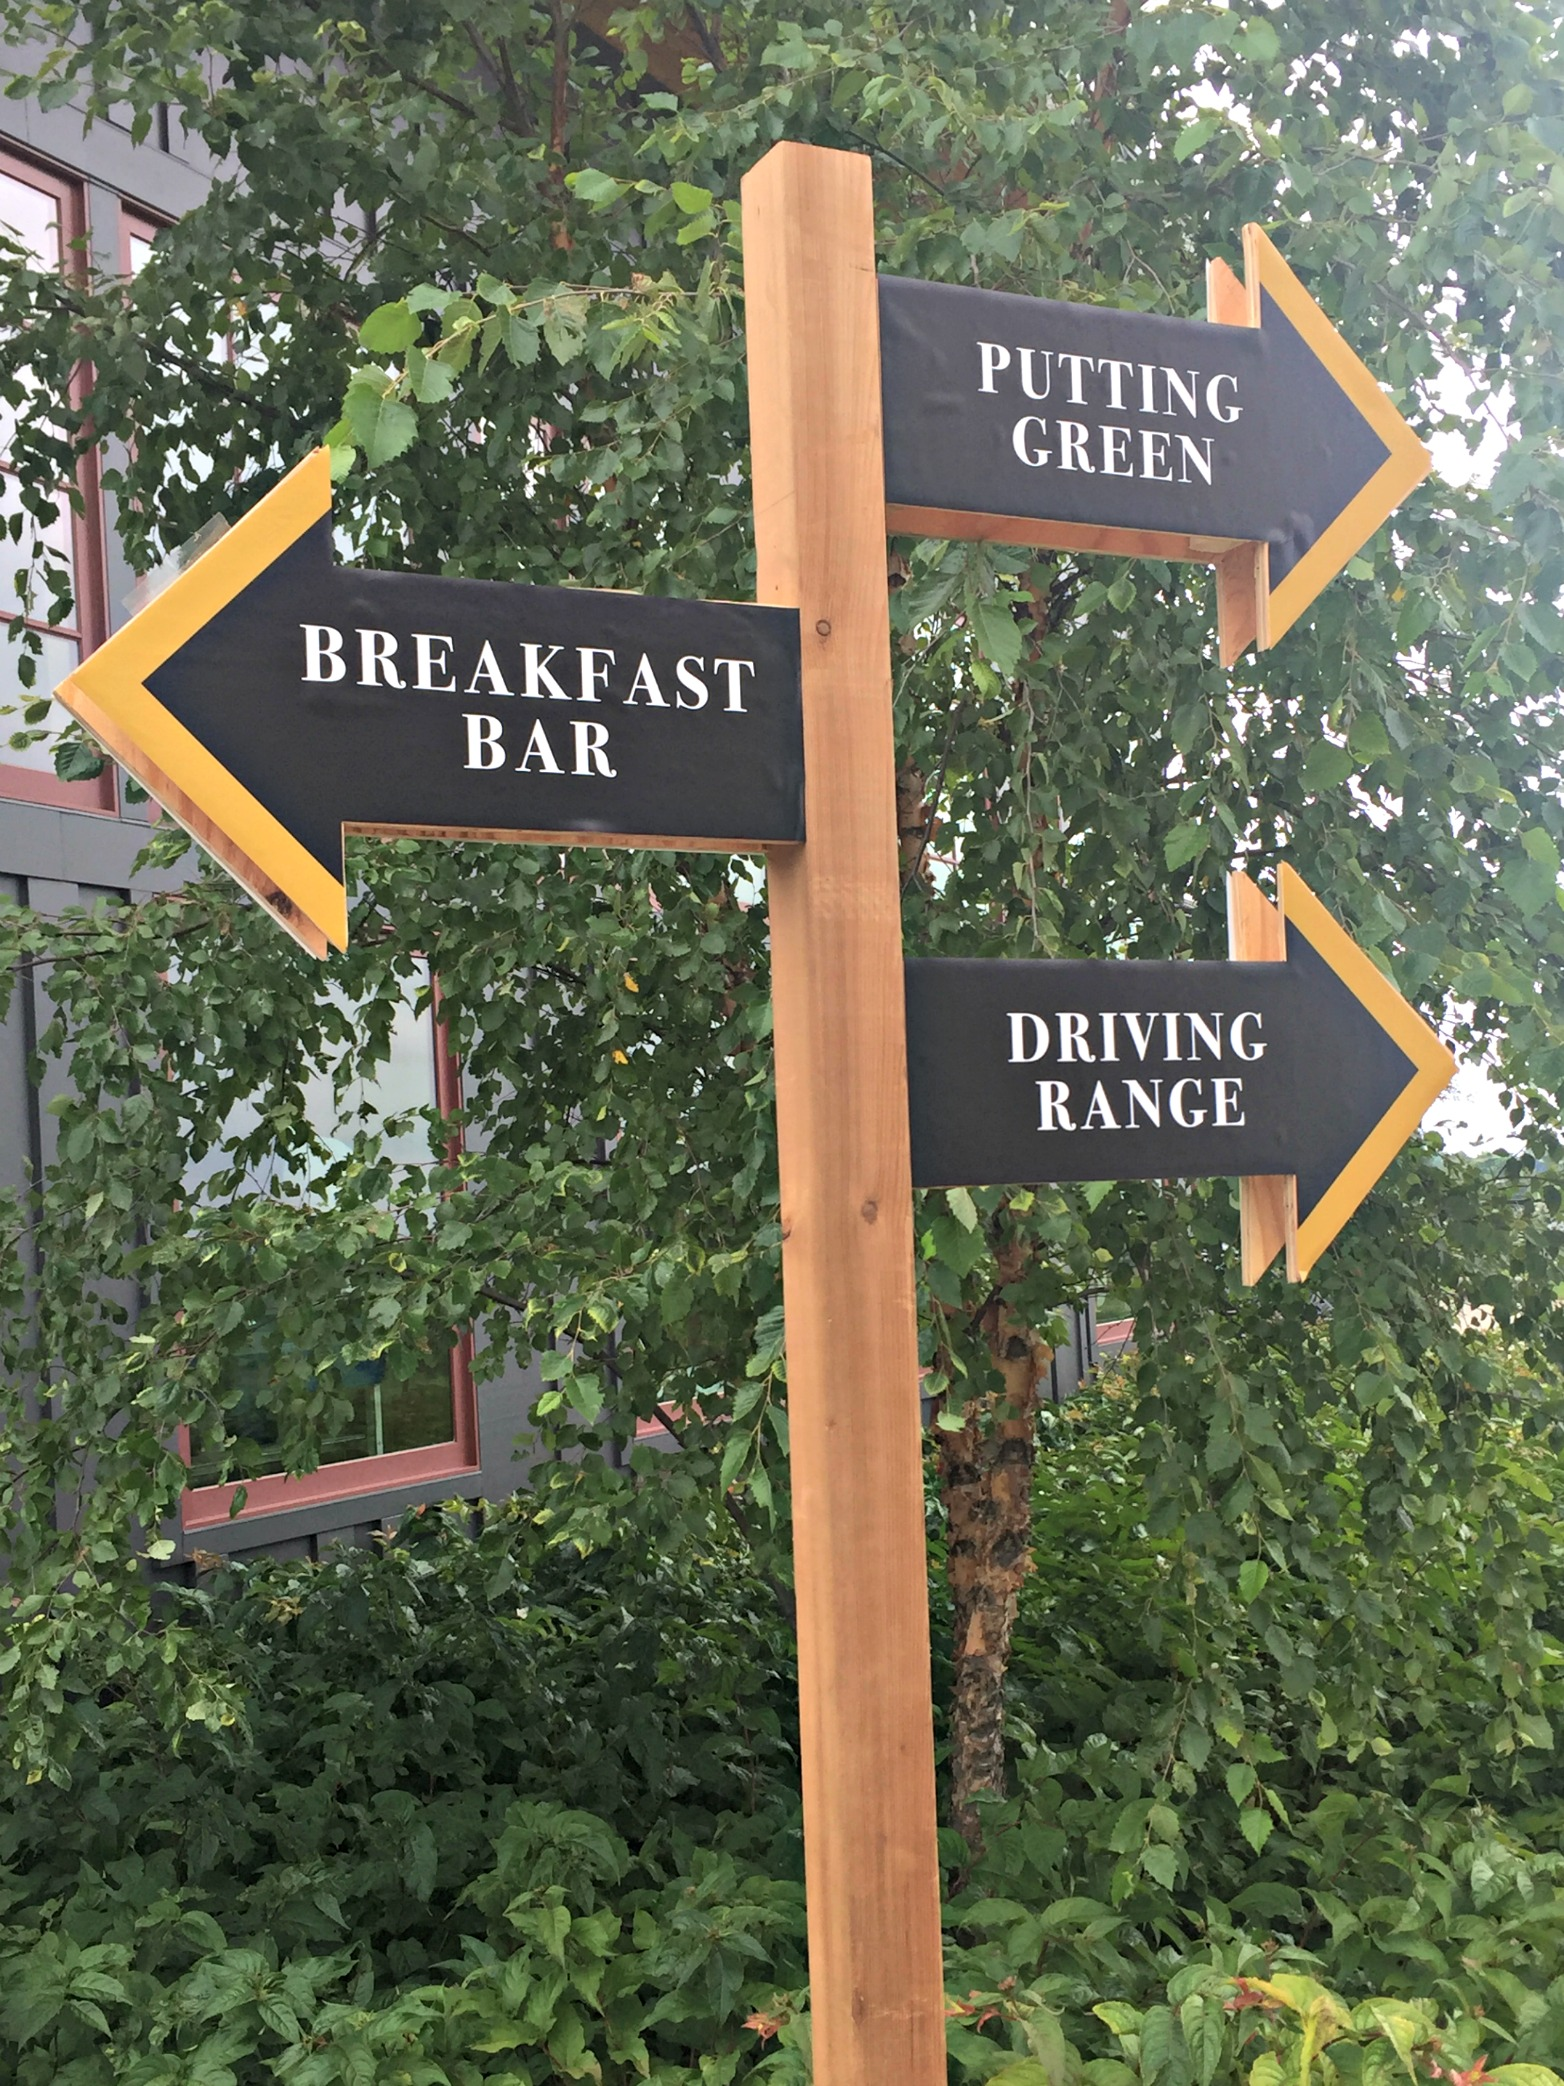 Golf Tournament Directional Signage helps guests find their way around Hazeltine National Golf Club